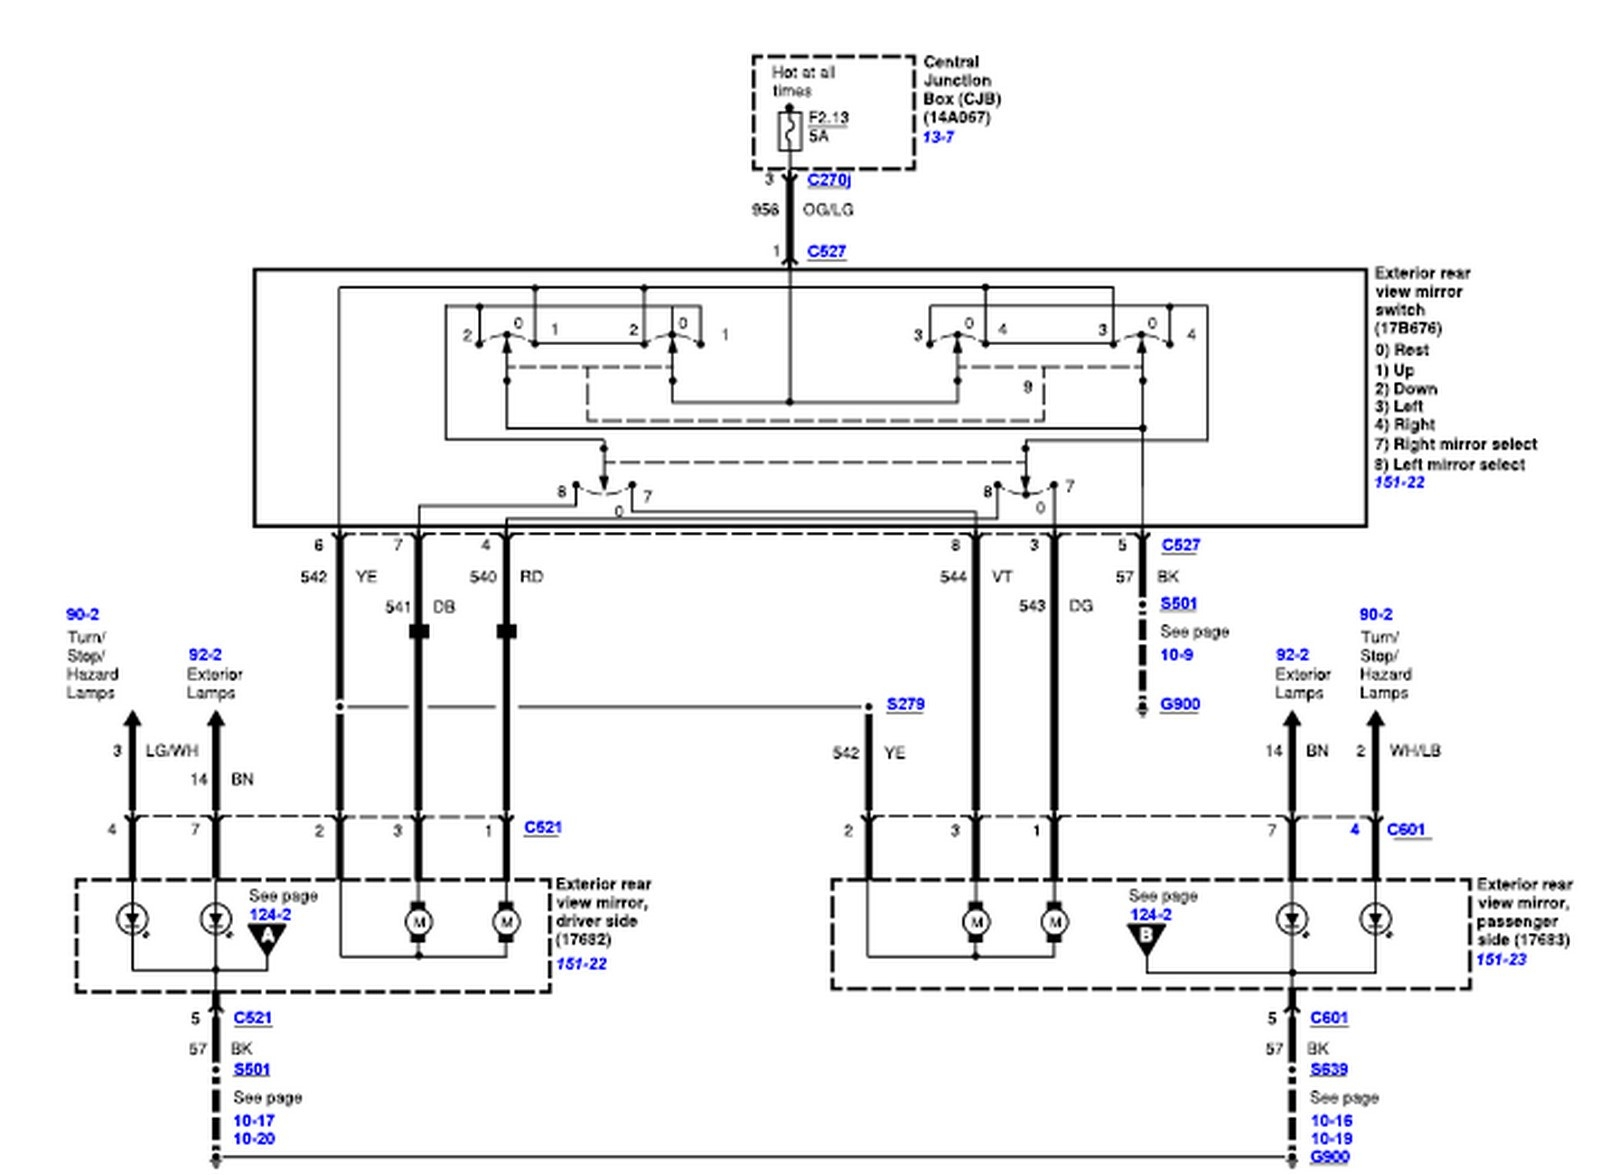 2005 f250 window wiring diagram